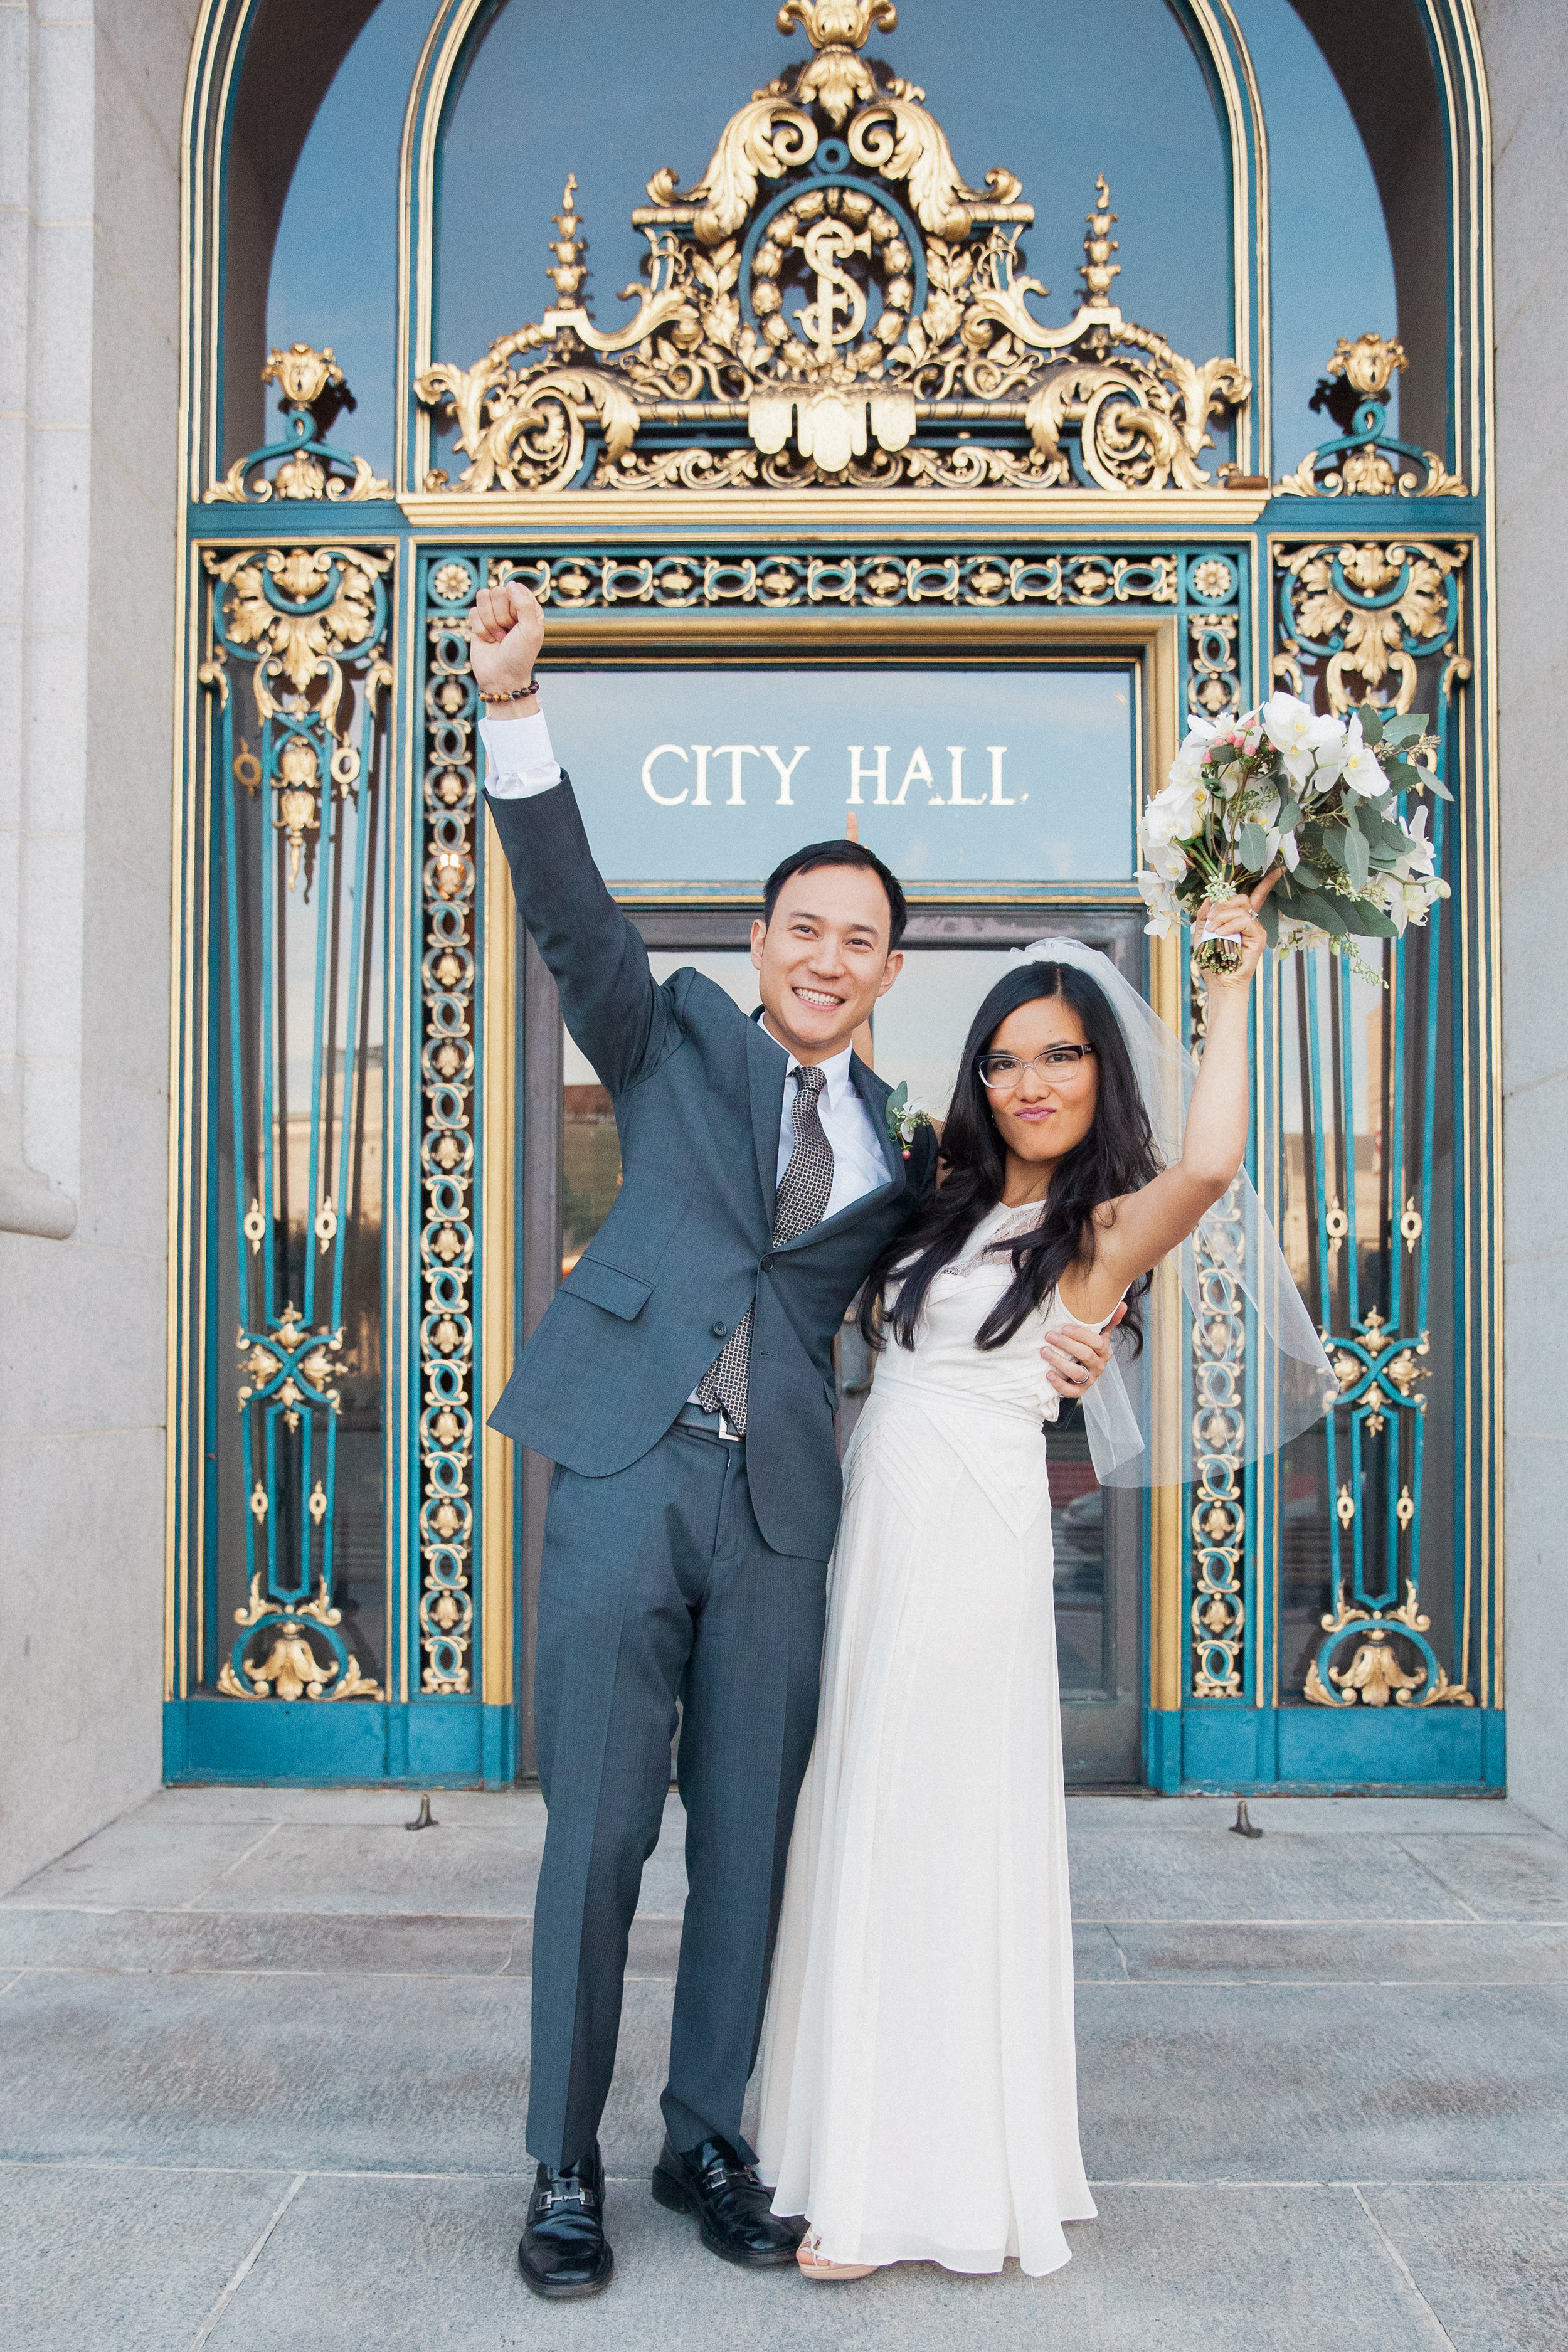 021_janaeshieldsphotography_sanfrancisco_cityhall_weddings.jpg